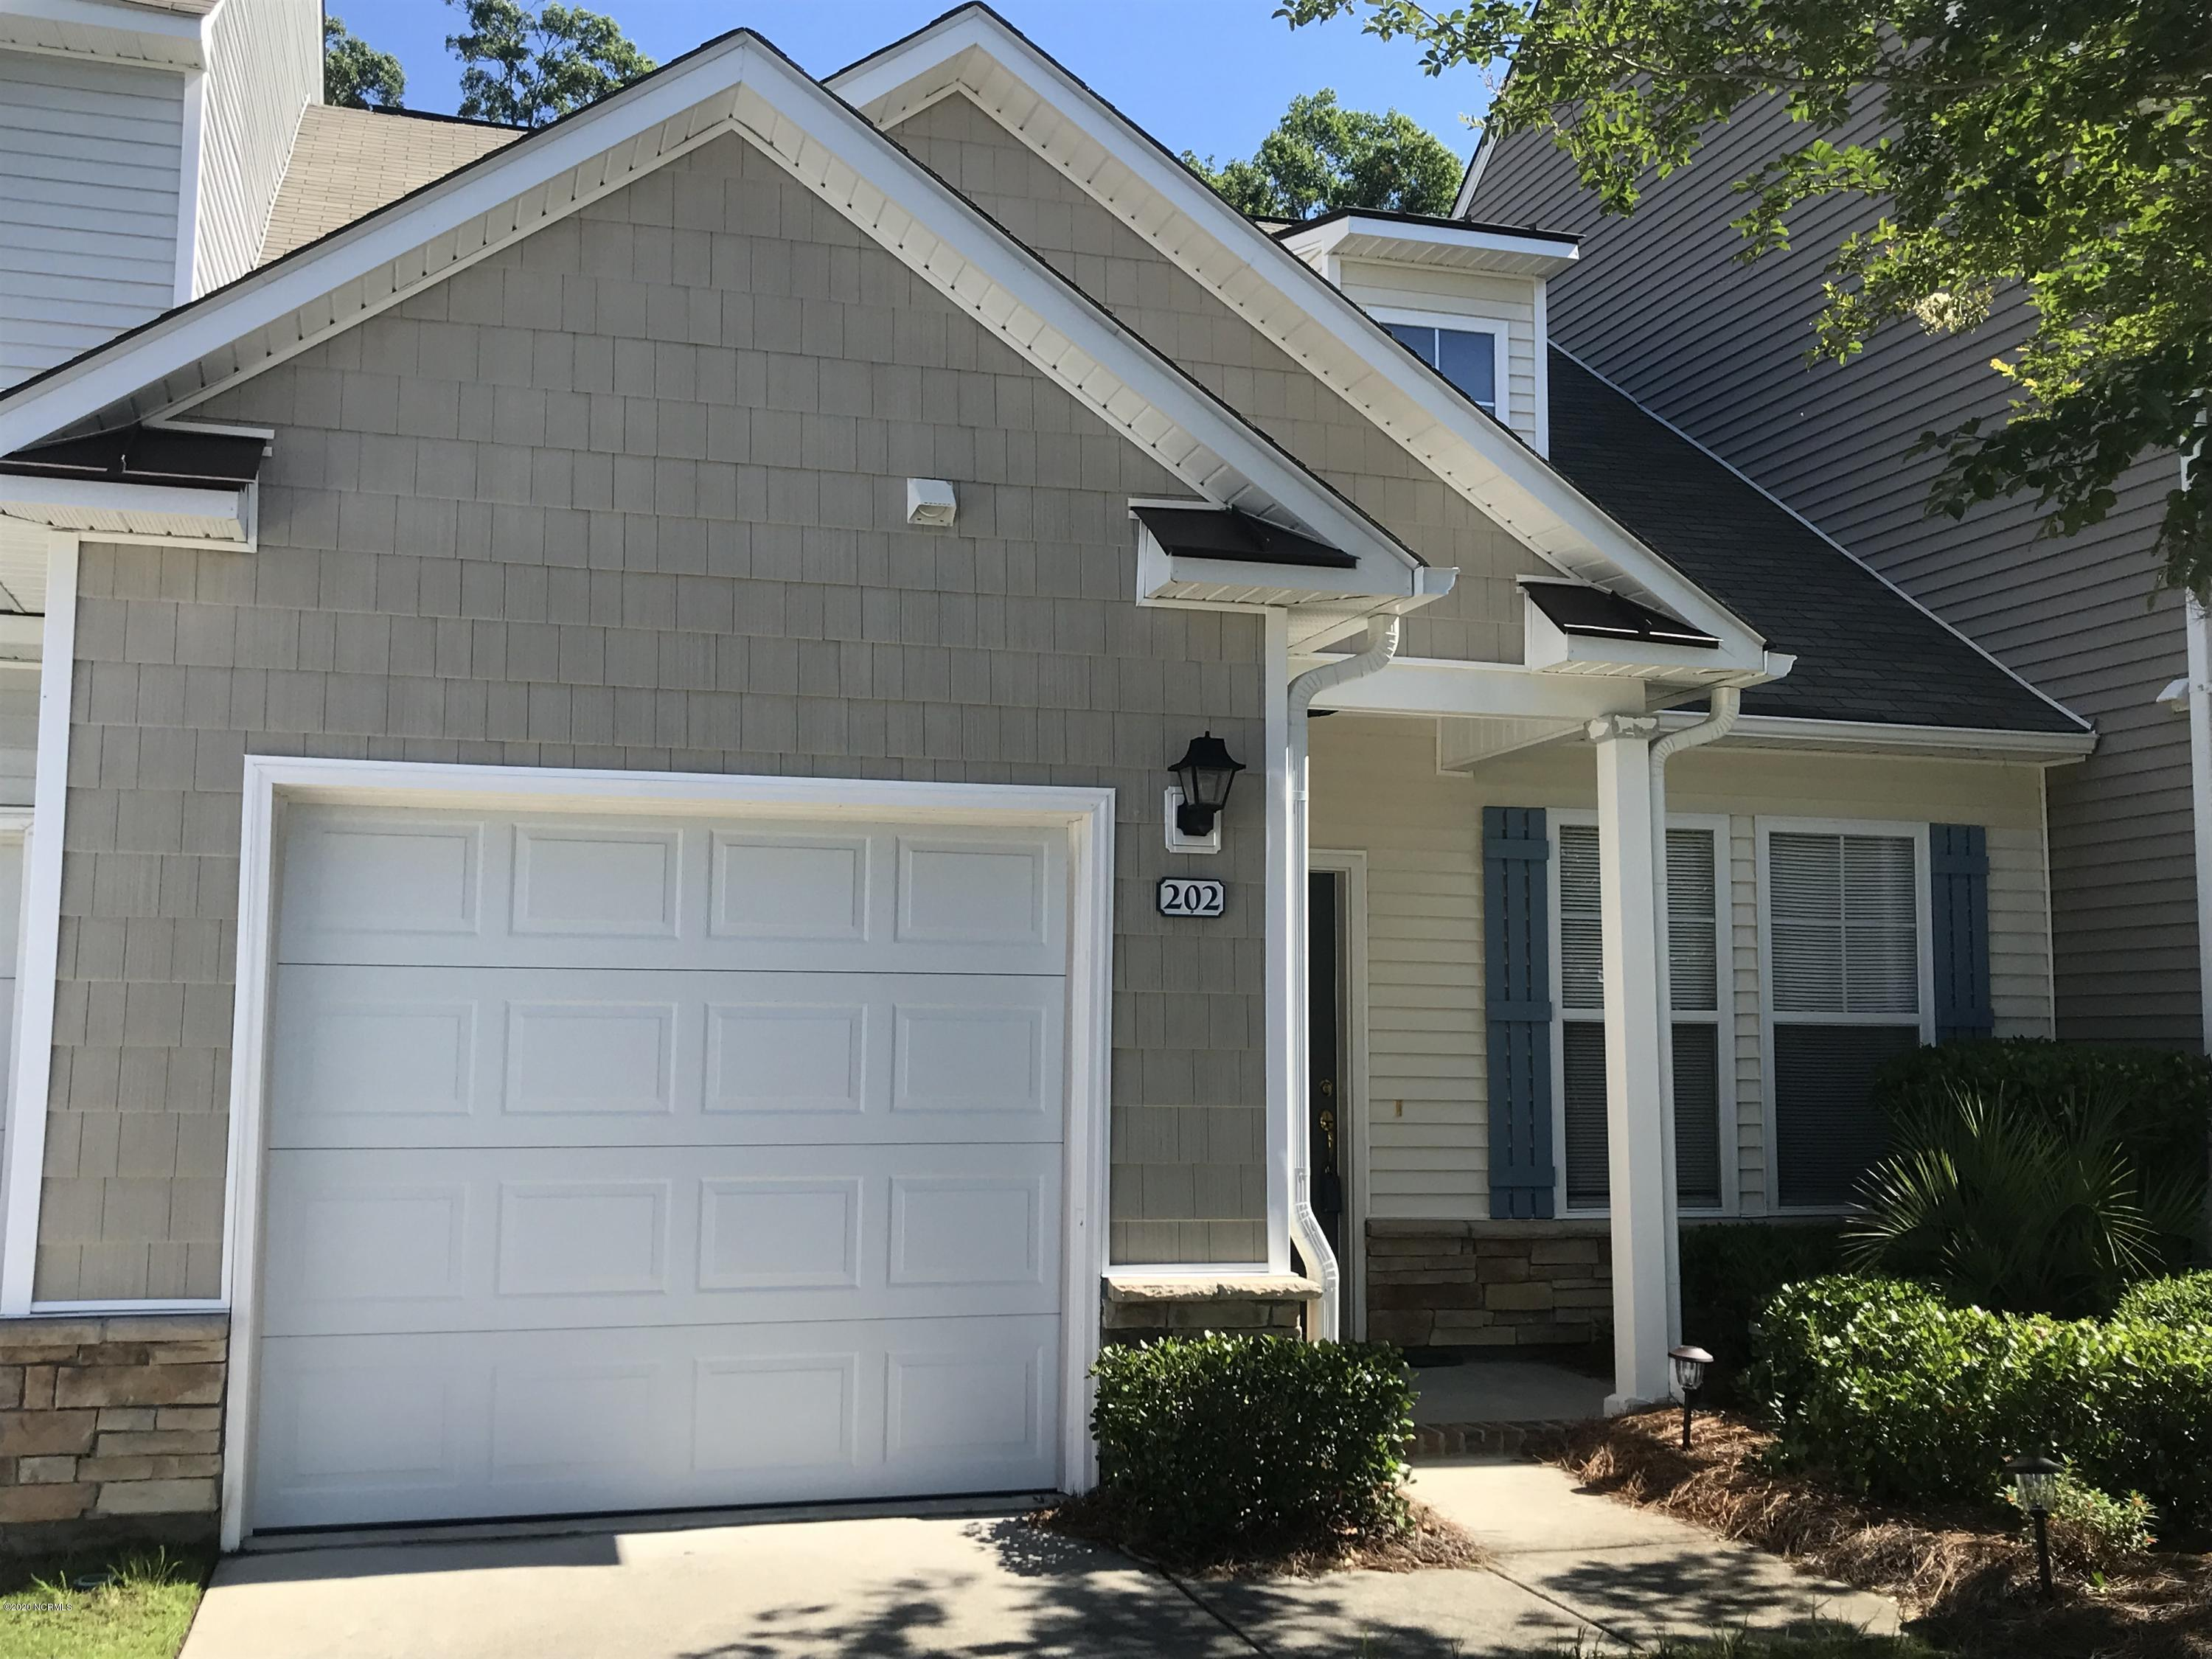 202 Pilot House Place, Calabash, North Carolina 28467, 3 Bedrooms Bedrooms, ,3 BathroomsBathrooms,Residential,For Sale,Pilot House,100224788